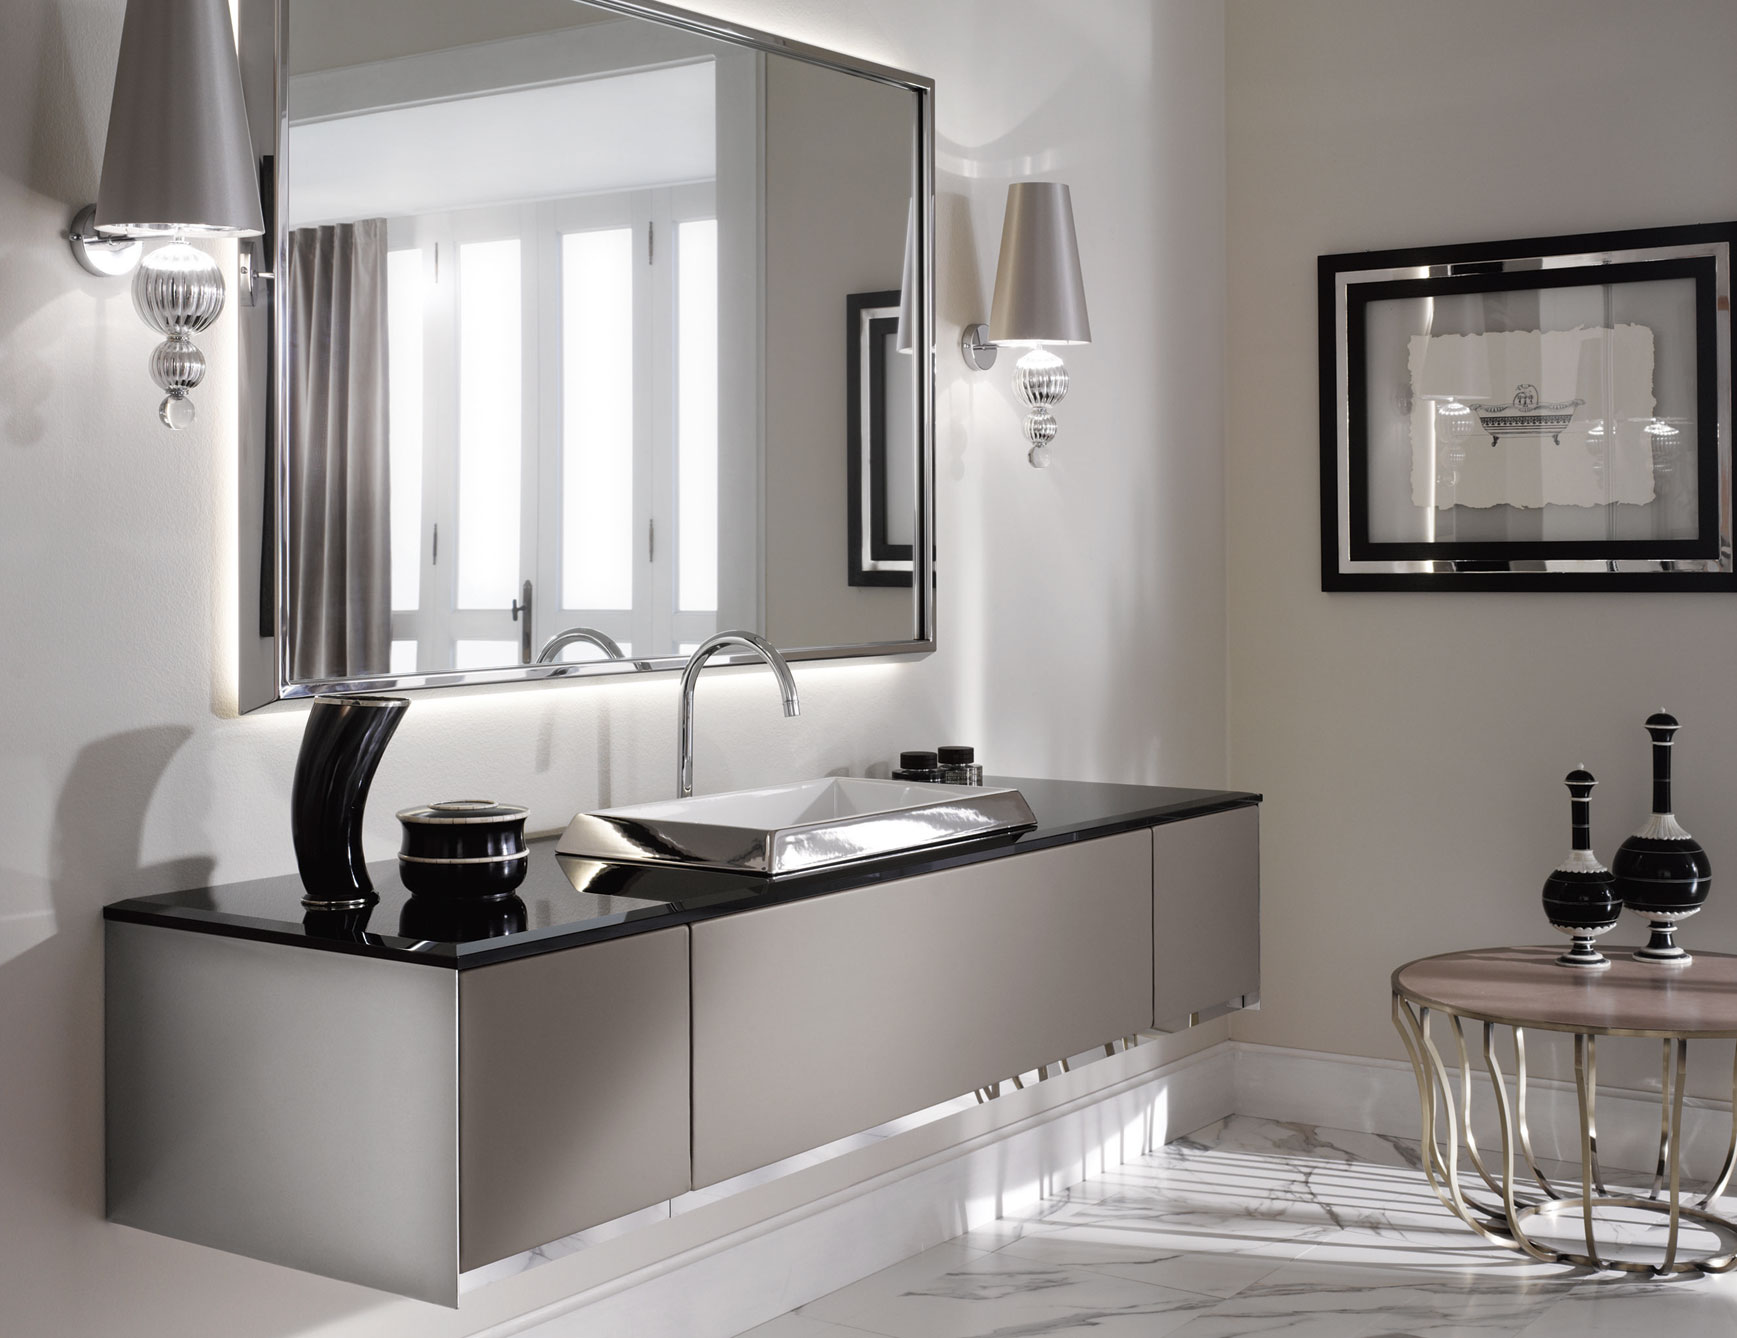 Exceptionnel View In Gallery Luxury Bathroom Vanity From Nella Vetrina